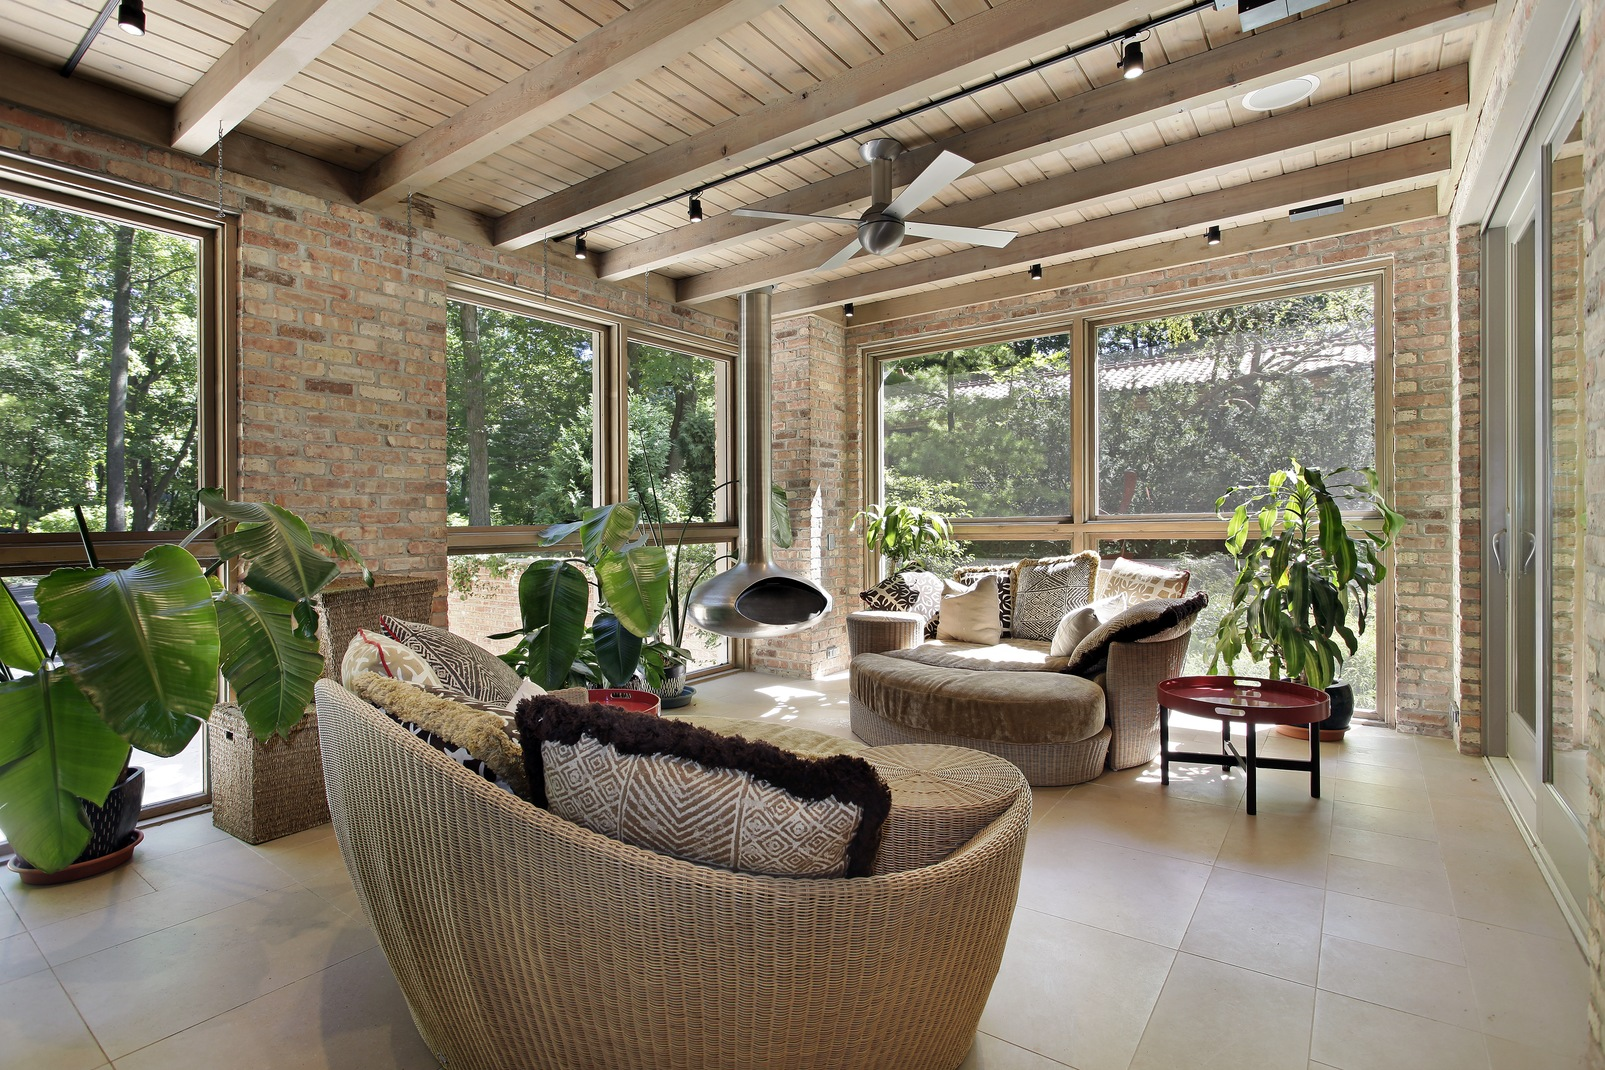 Enjoy The Sights And Sounds Of Nature From Your Sunroom